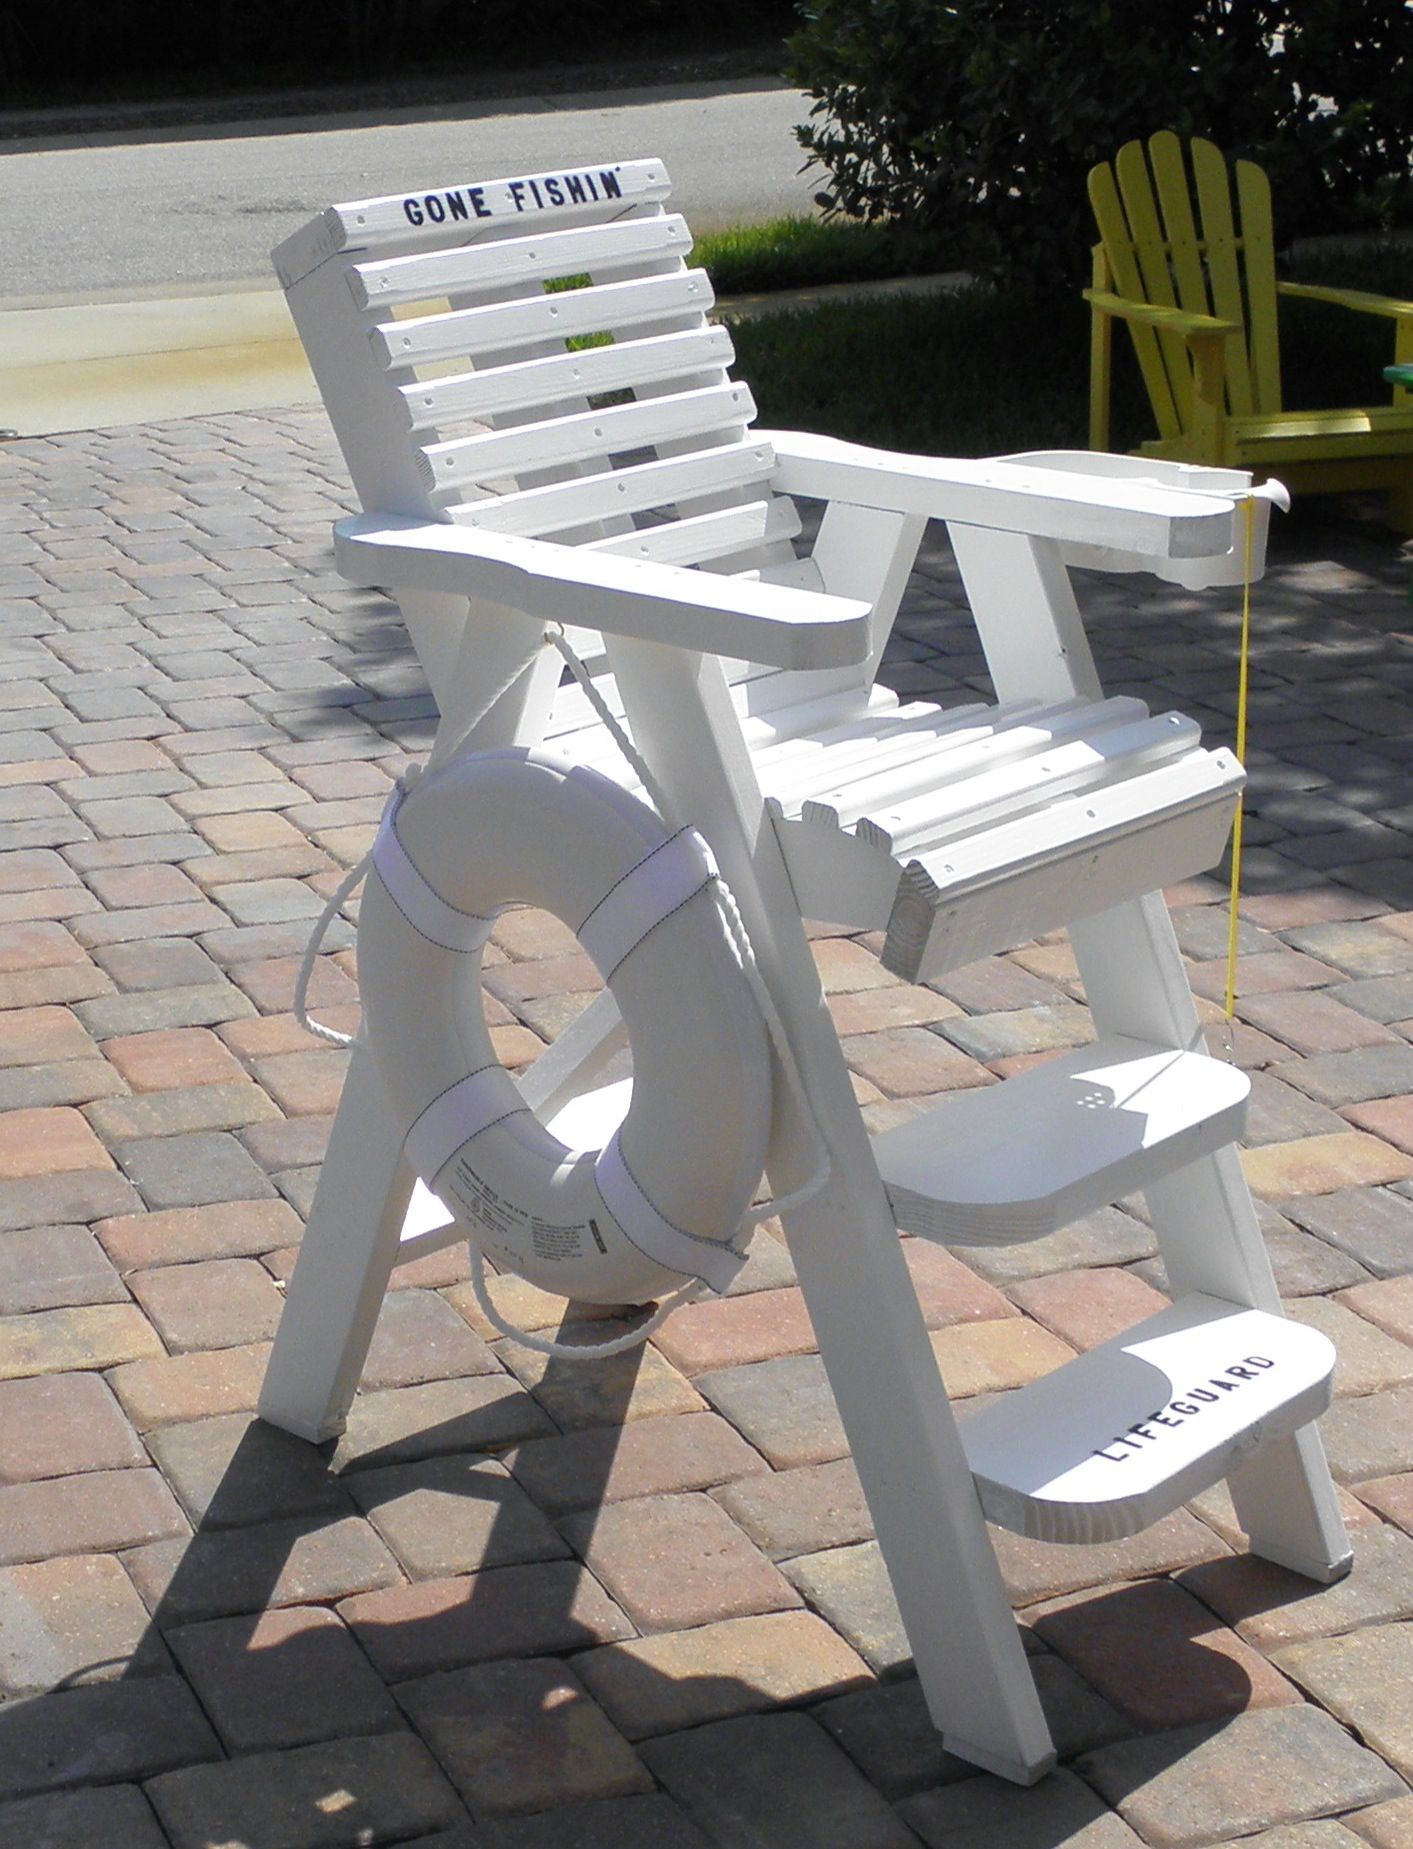 How To Build A Lifeguard Chair Baseball Glove Canada Decorative Chairs By Beachwood Designs Outside Furniture